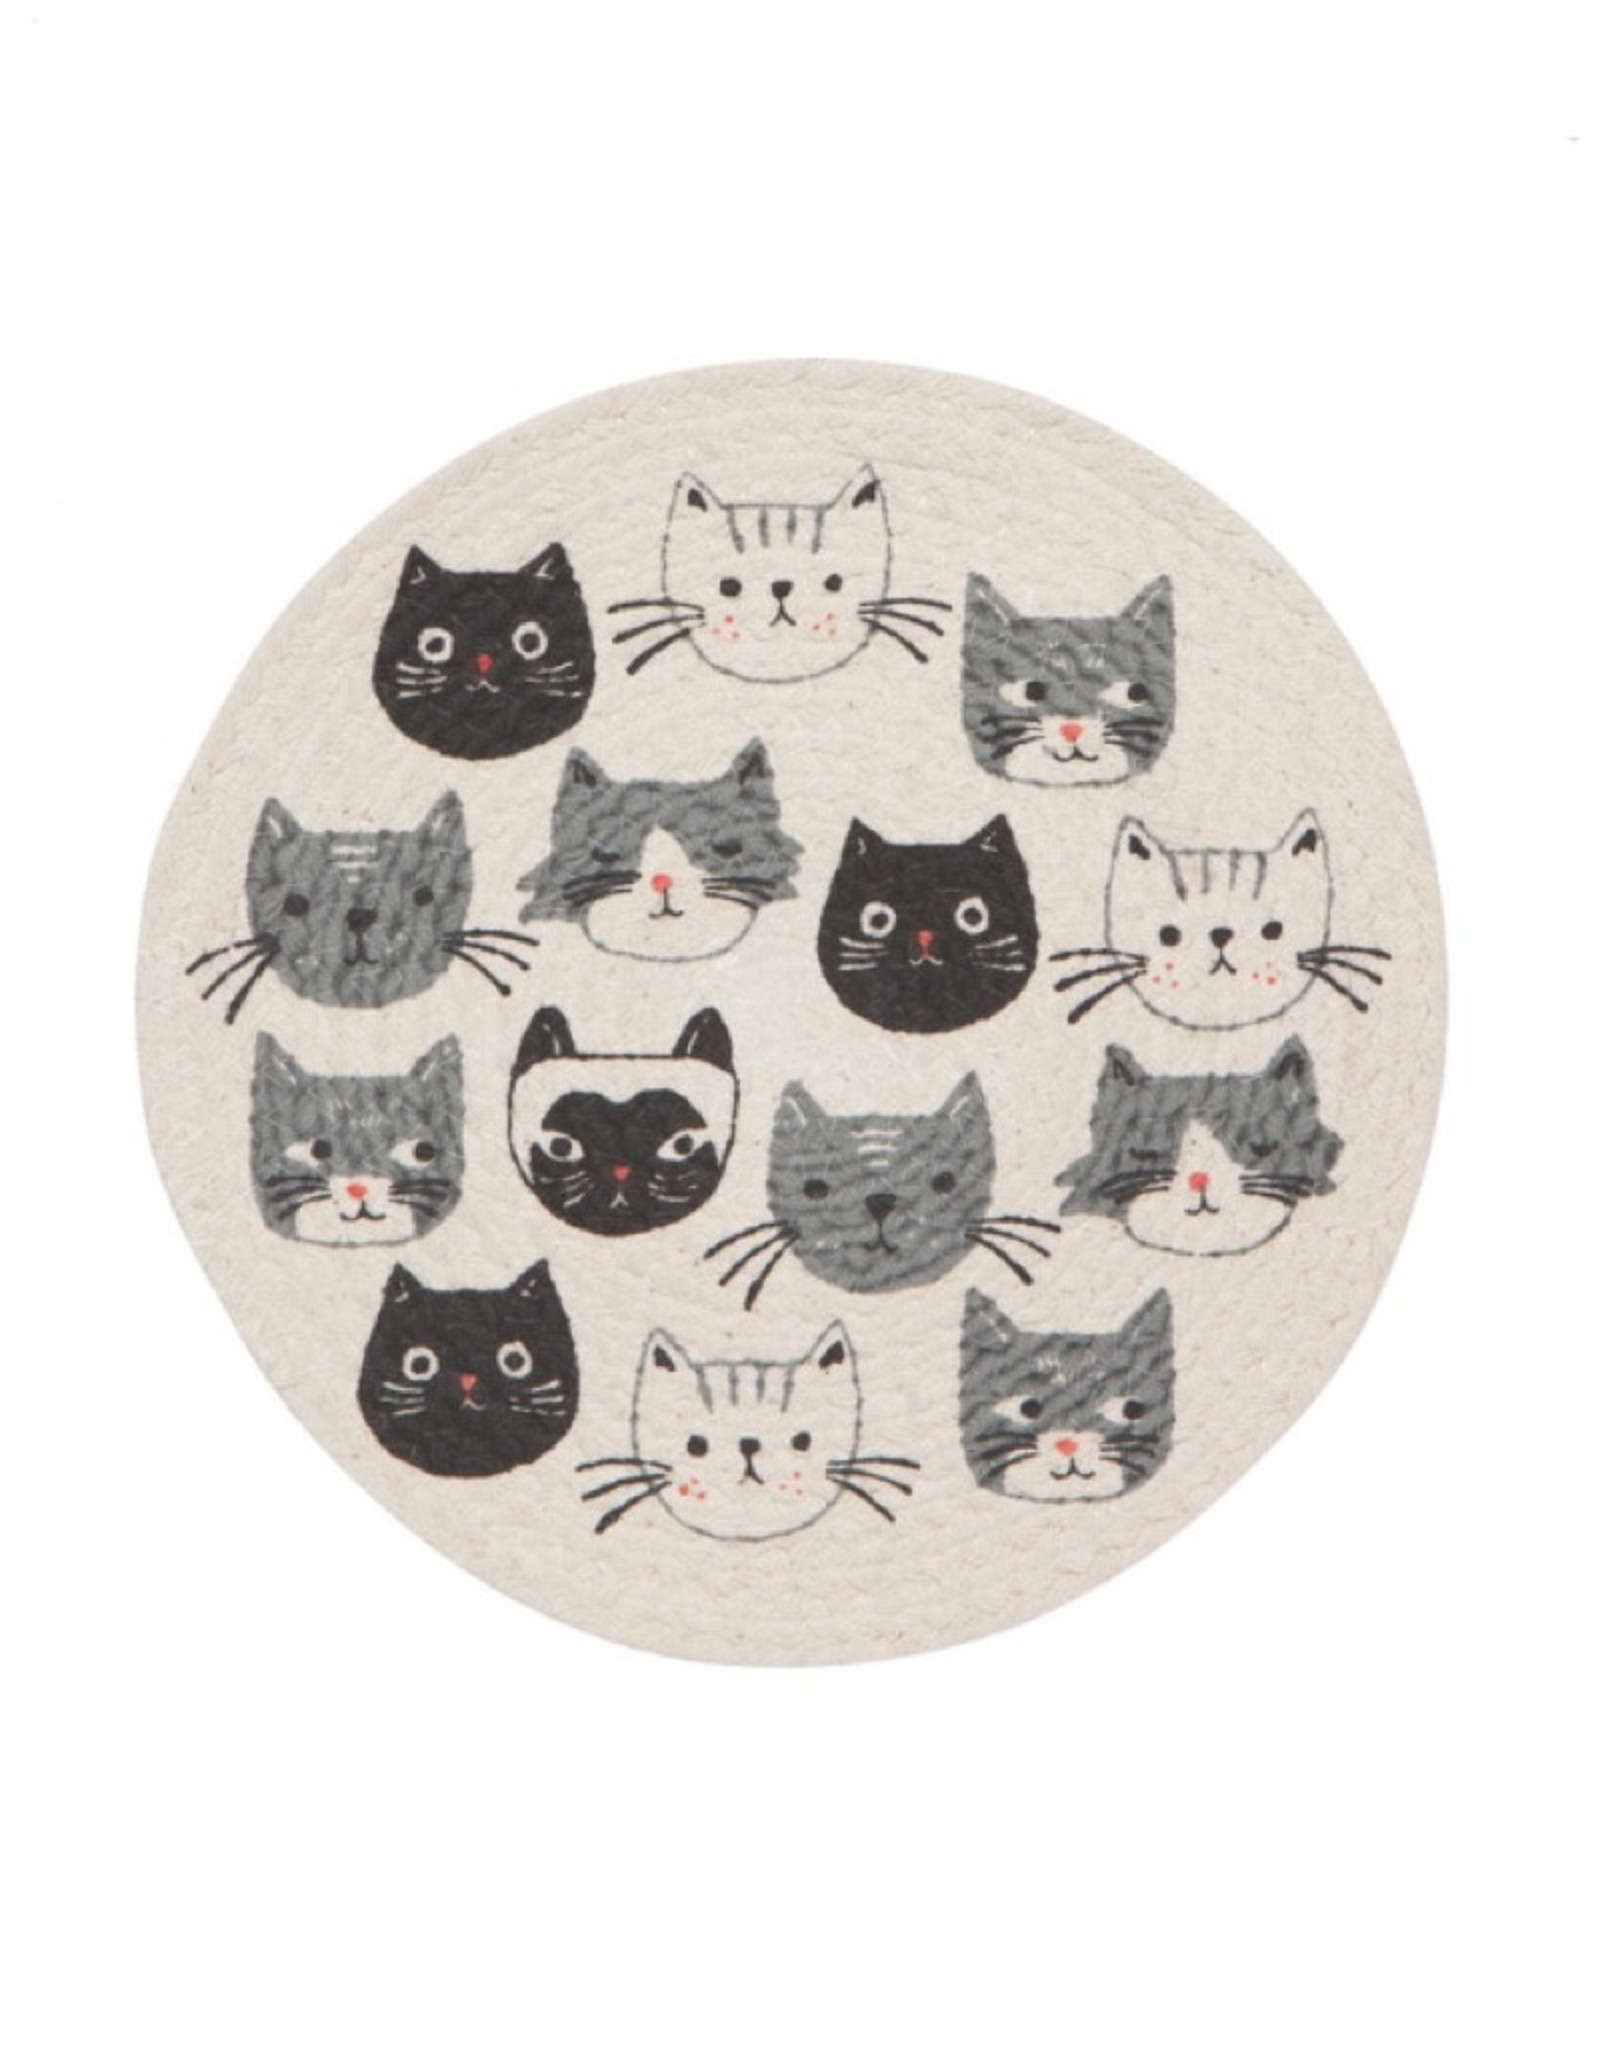 2051001 Cats Meow Braided Trivet